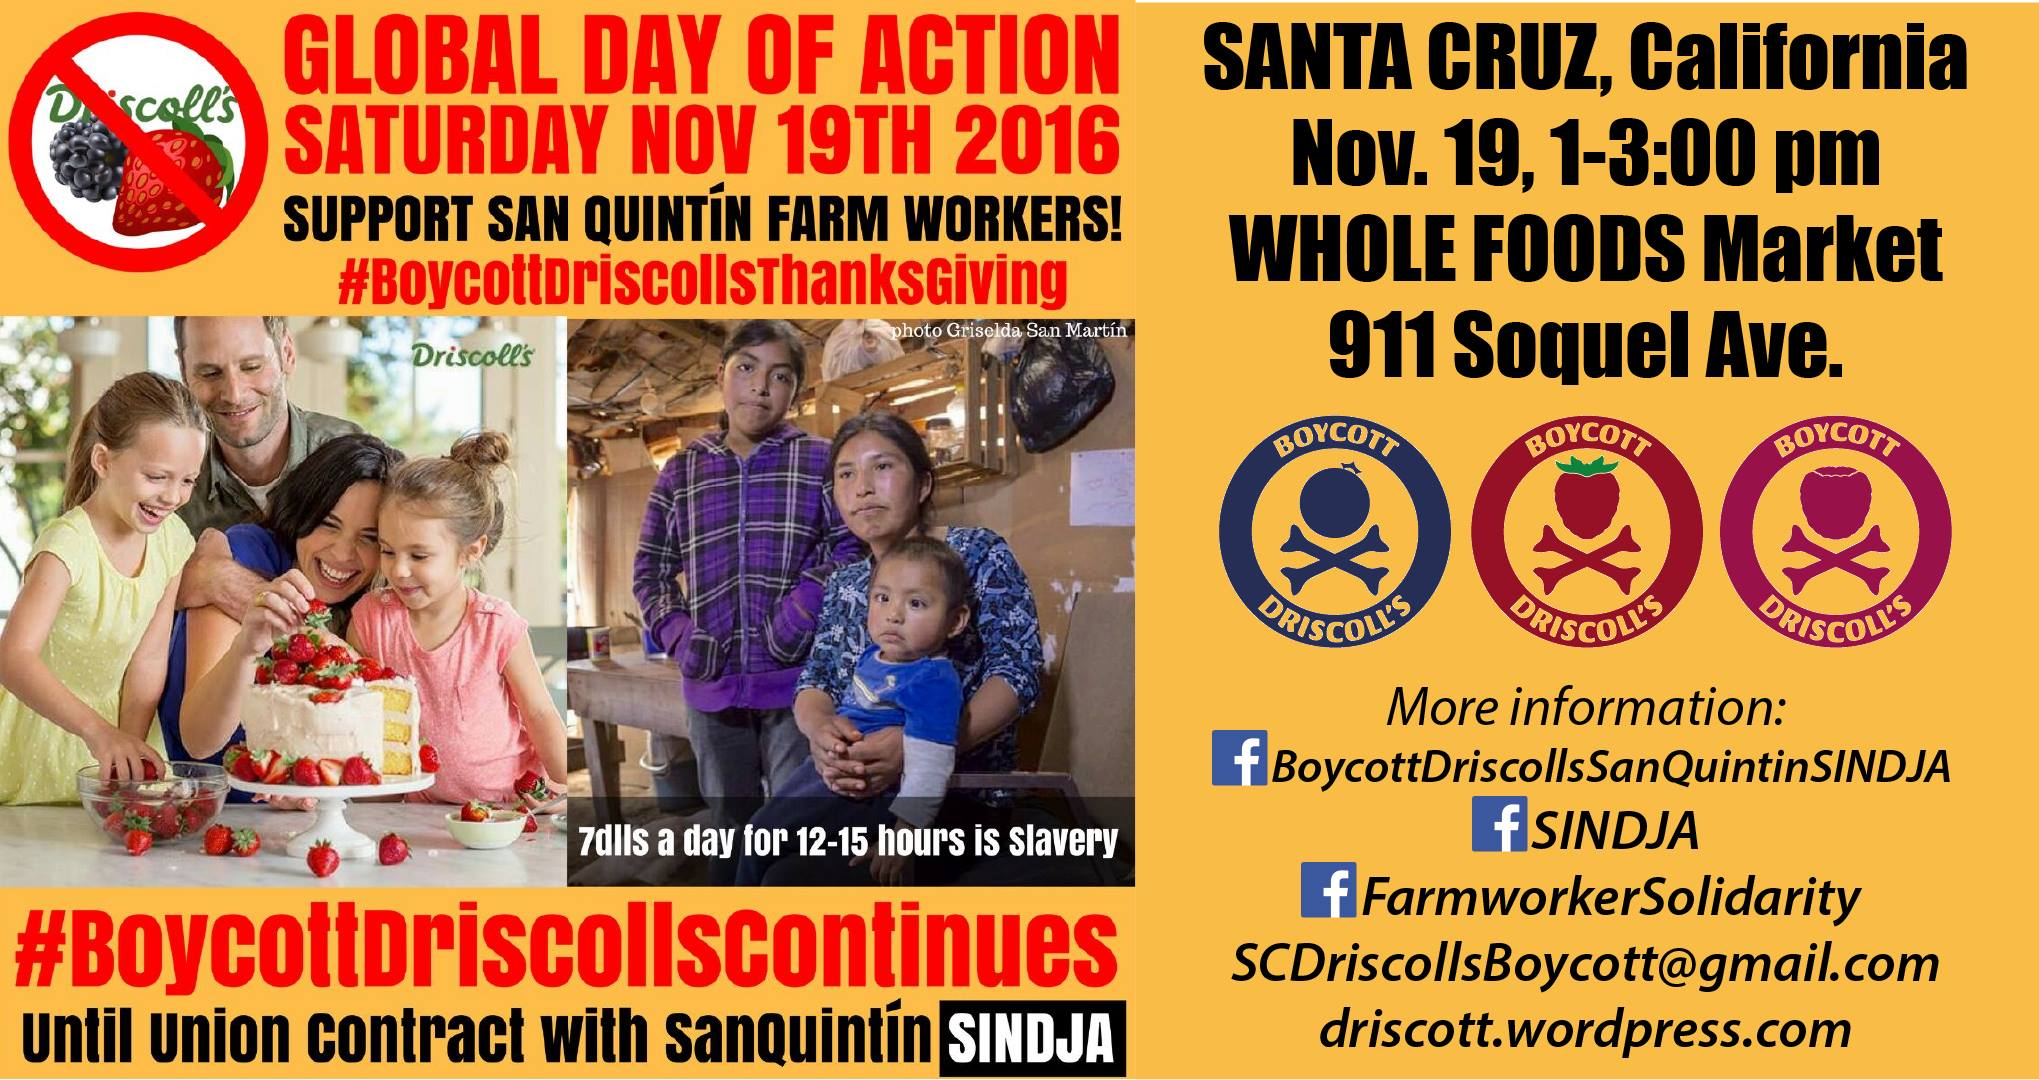 Boycott Driscoll's Day of Action in Santa Cruz : Indybay: https://www.indybay.org/newsitems/2016/11/10/18793354.php